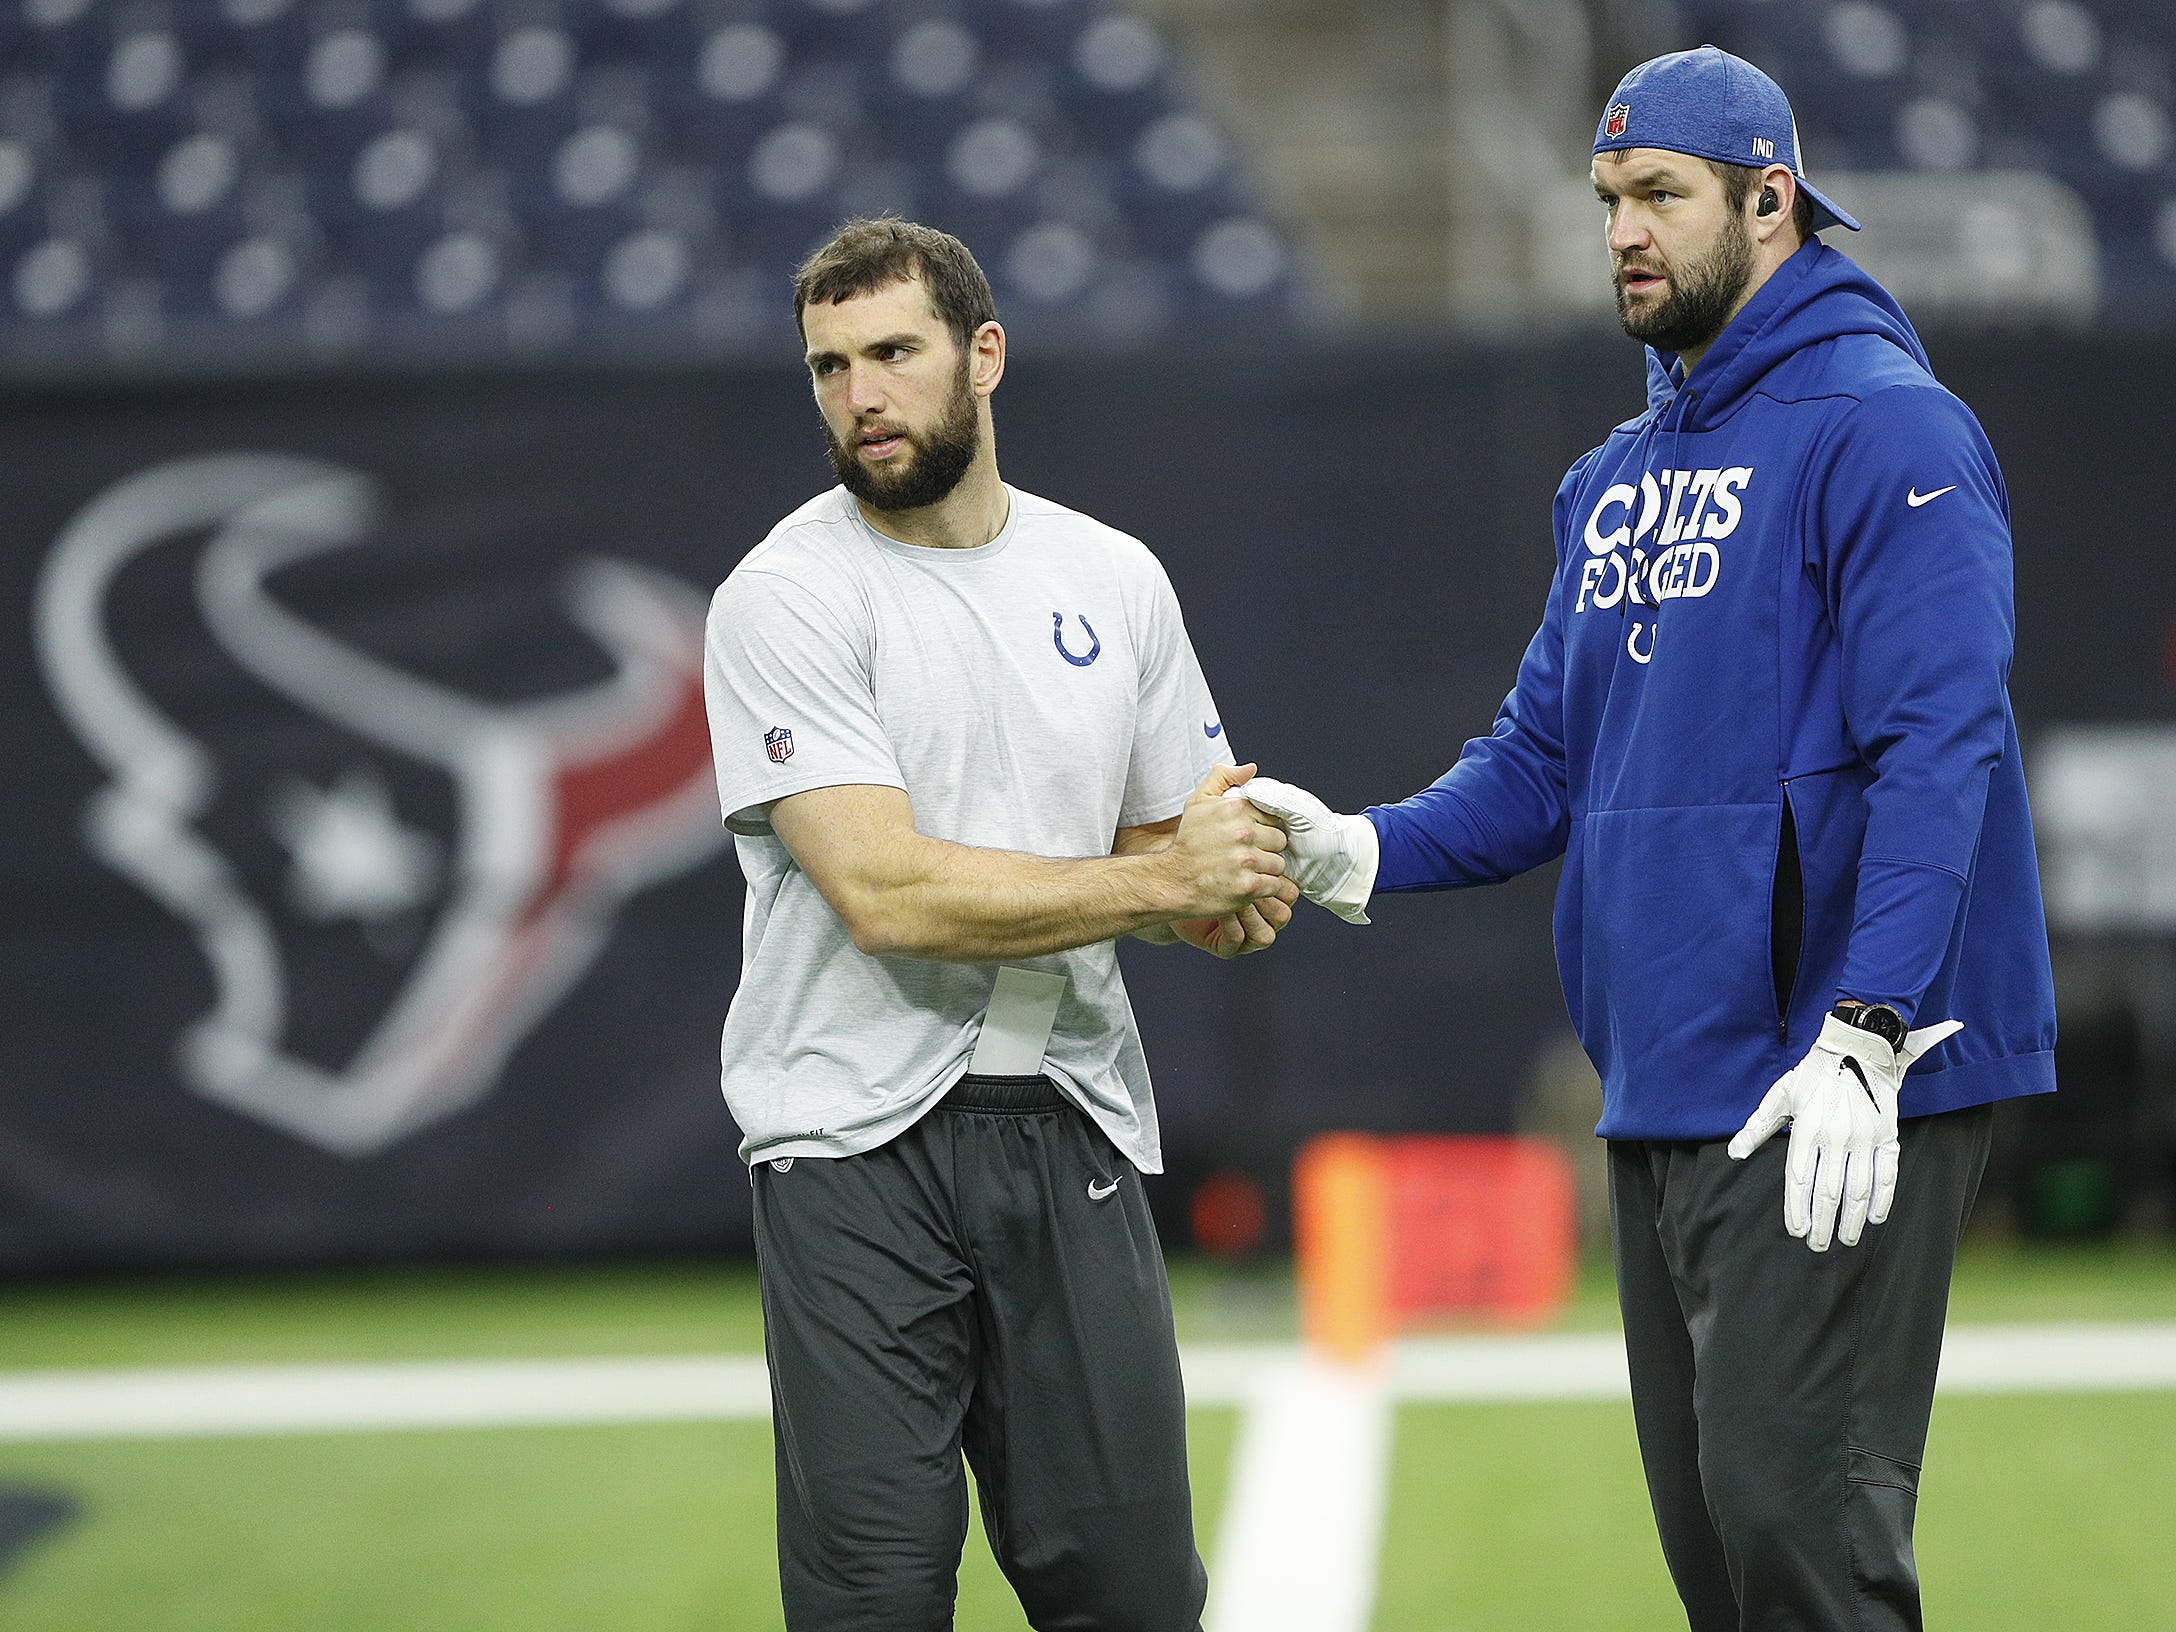 Indianapolis Colts quarterback Andrew Luck (12) and defensive end Margus Hunt (92) before the start of their game against the Houston Texans at NRG Stadium in Houston, TX., on Sunday, Dec. 9, 2018.